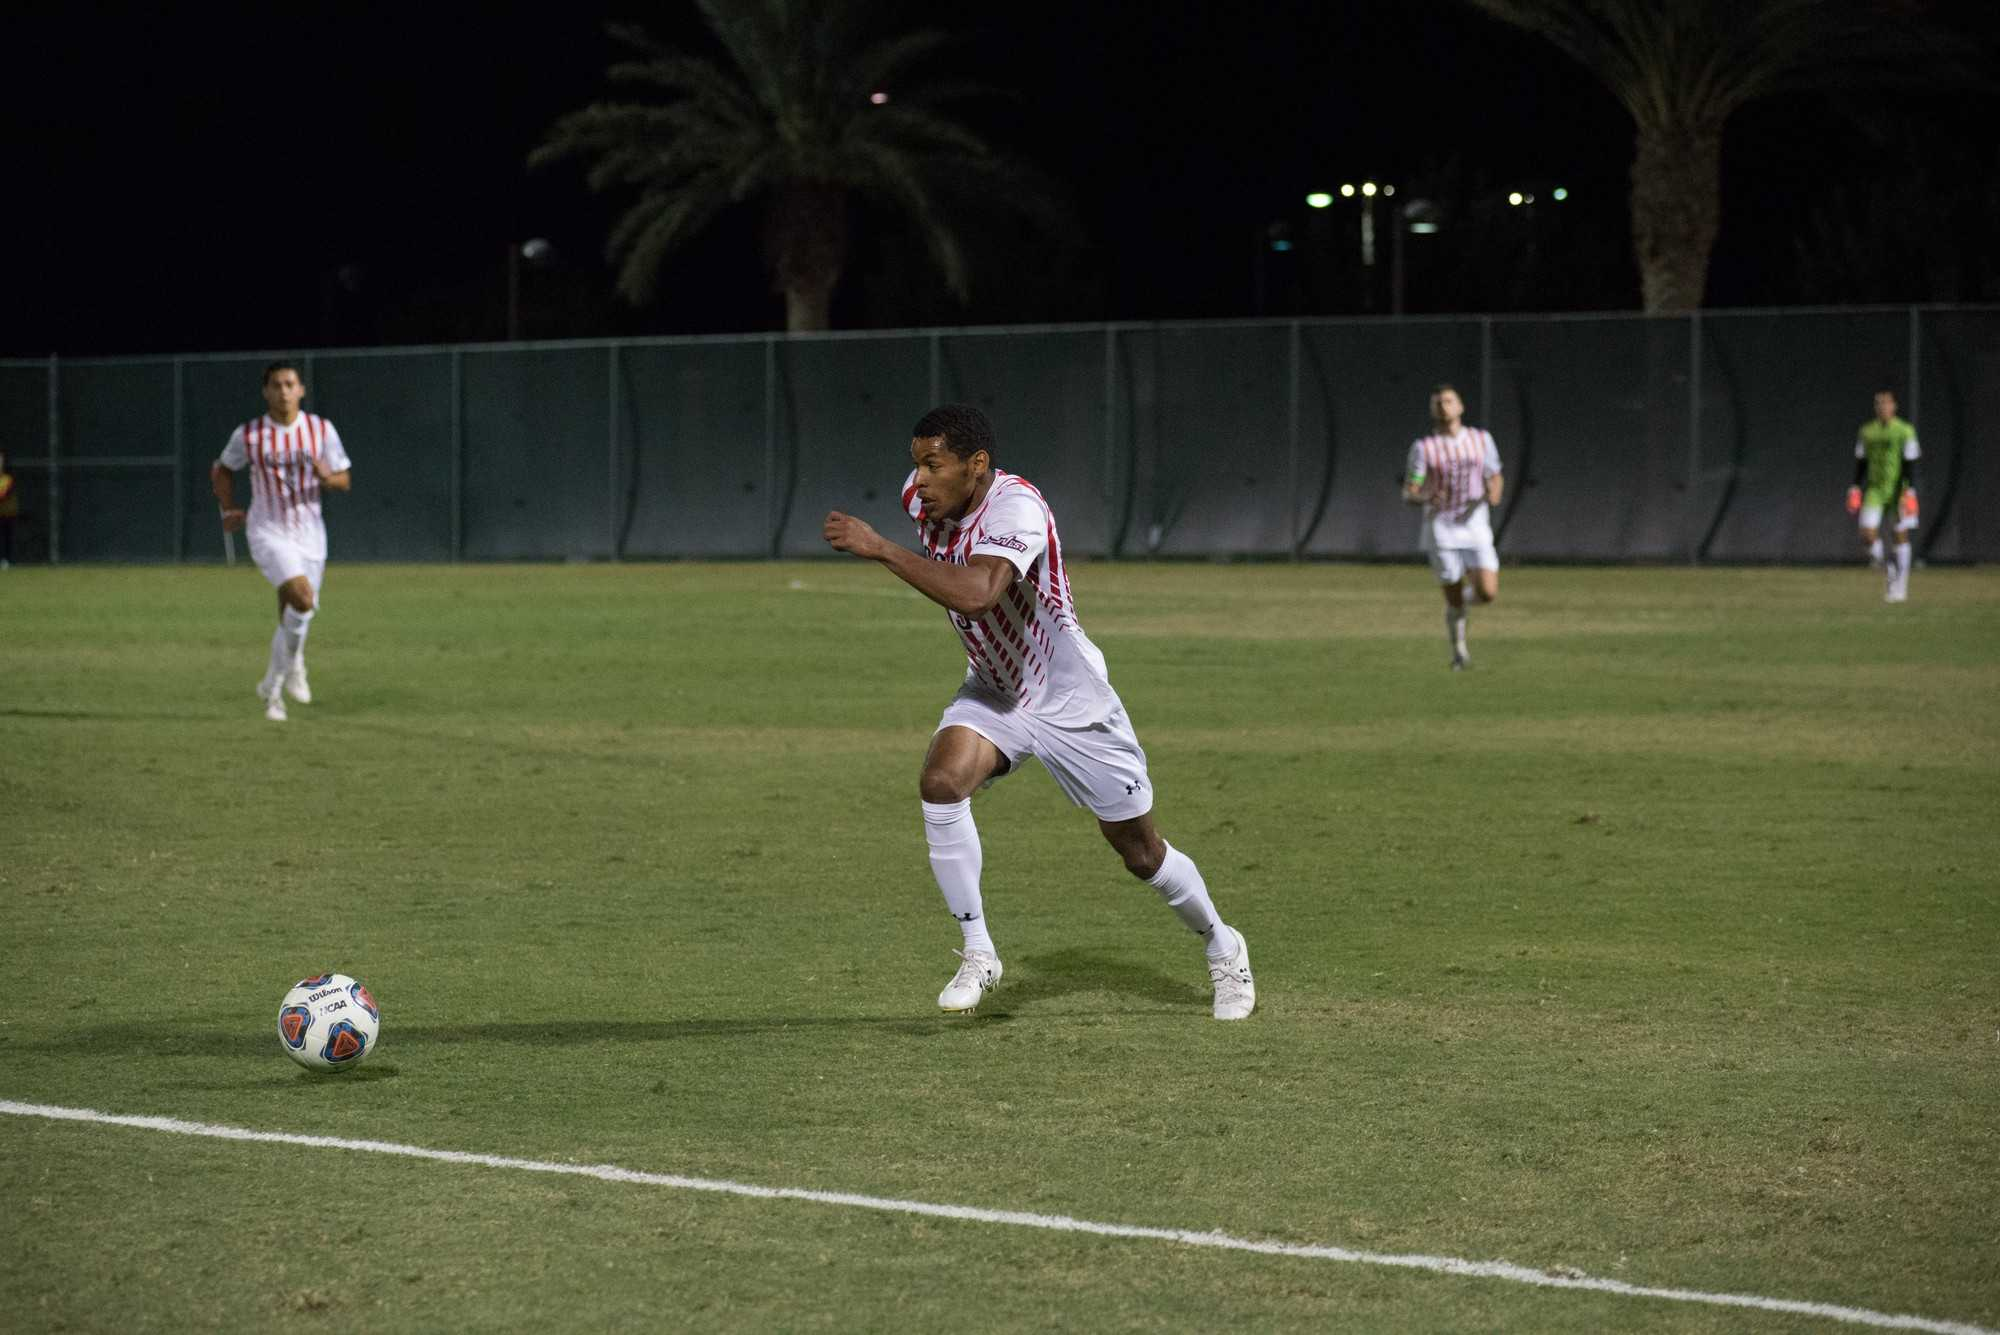 Fullerton scores on themselves, give Matadors draw